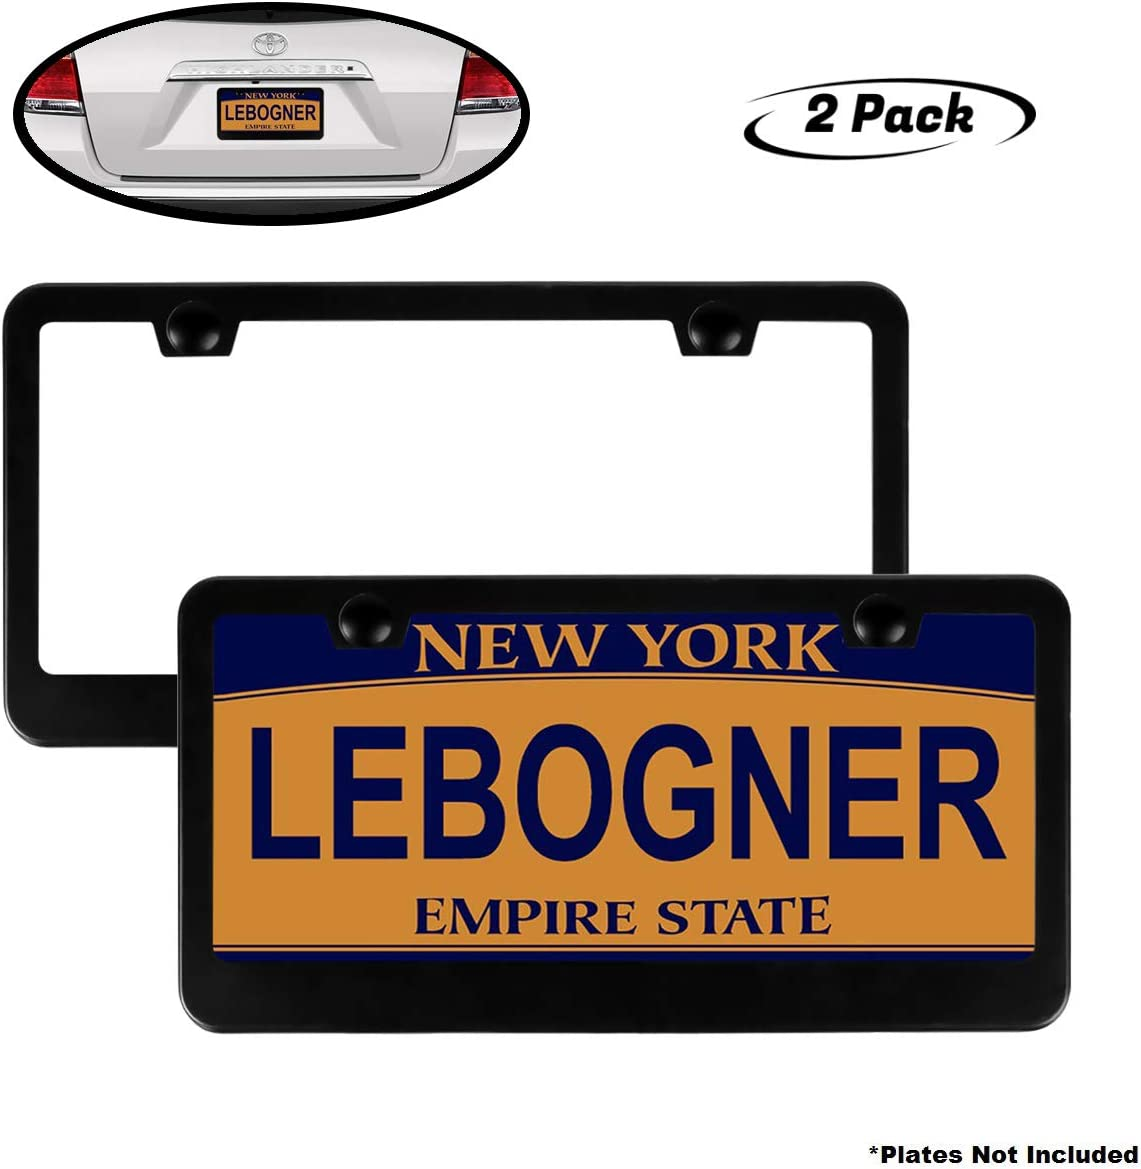 lebogner Car License Plate Frames, 2 Pack Matte Aluminum Auto Plate Frames, Will Fit Standard US Plates, 2 Hole Stainless Steel Black Unbreakable Frames to Protect Plates, Mounting Hardware Included